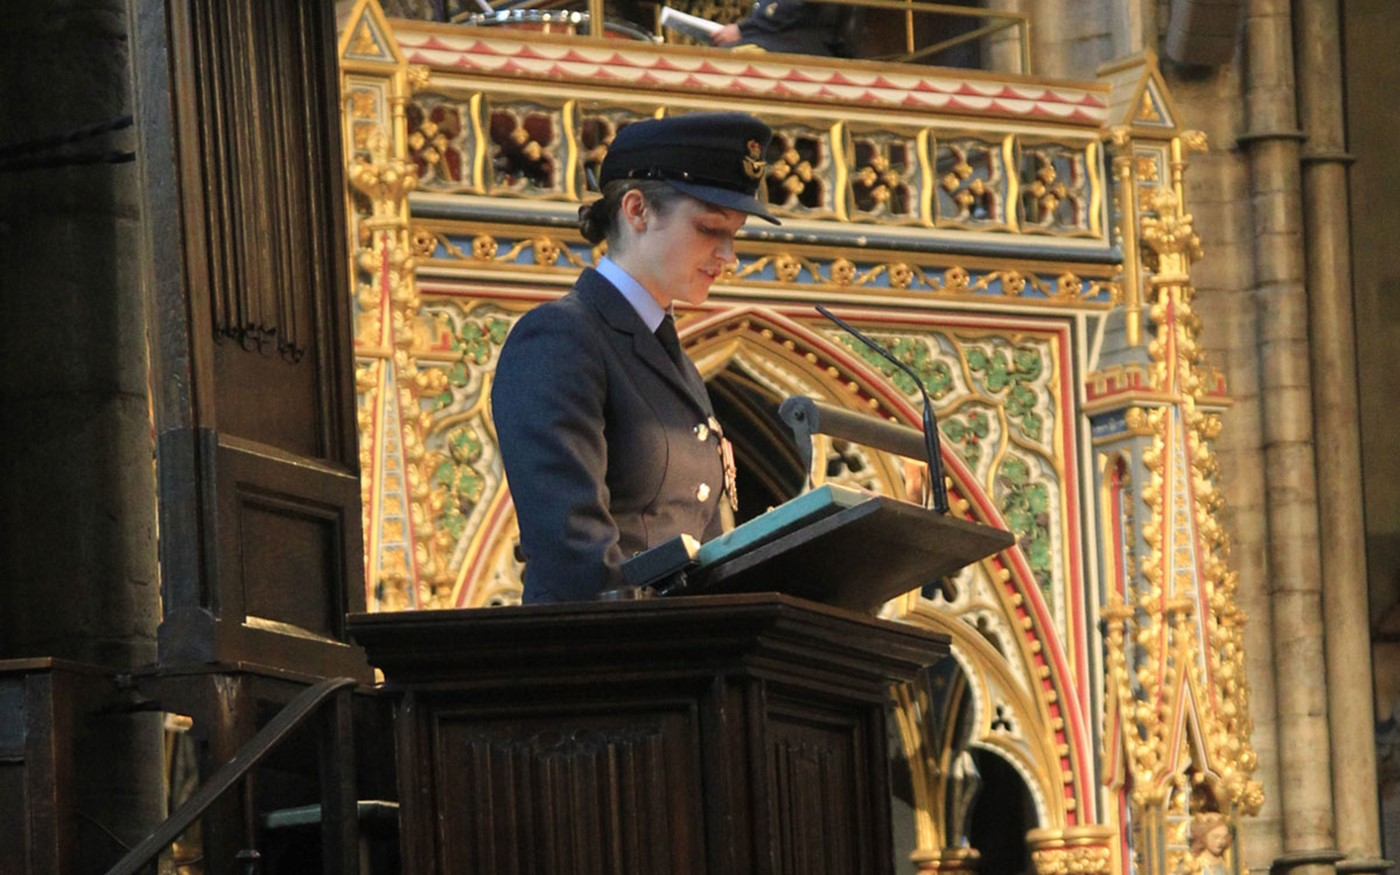 Flight Lieutenant Alexandra Nash reads Isaiah 40: 25-31 from the Nave Pulpit